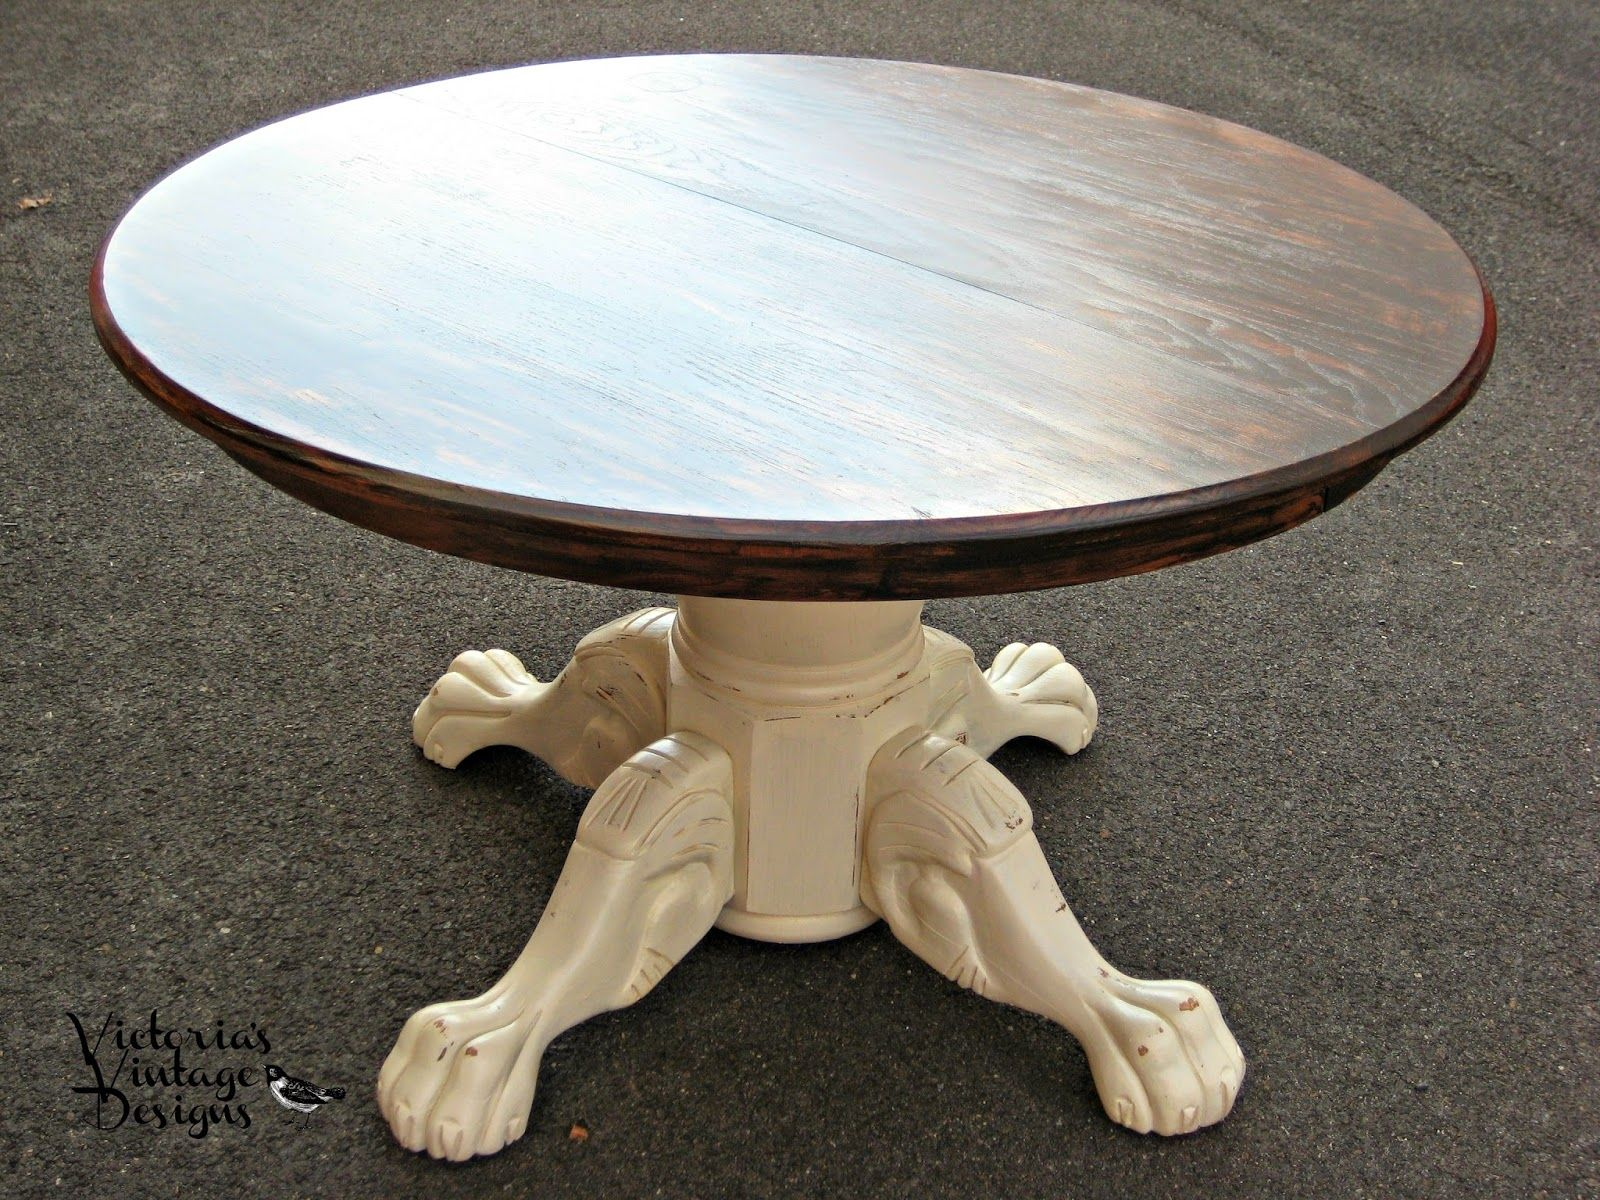 Victorias Vintage Designs Vintage Oak Claw Foot Round Dining Table